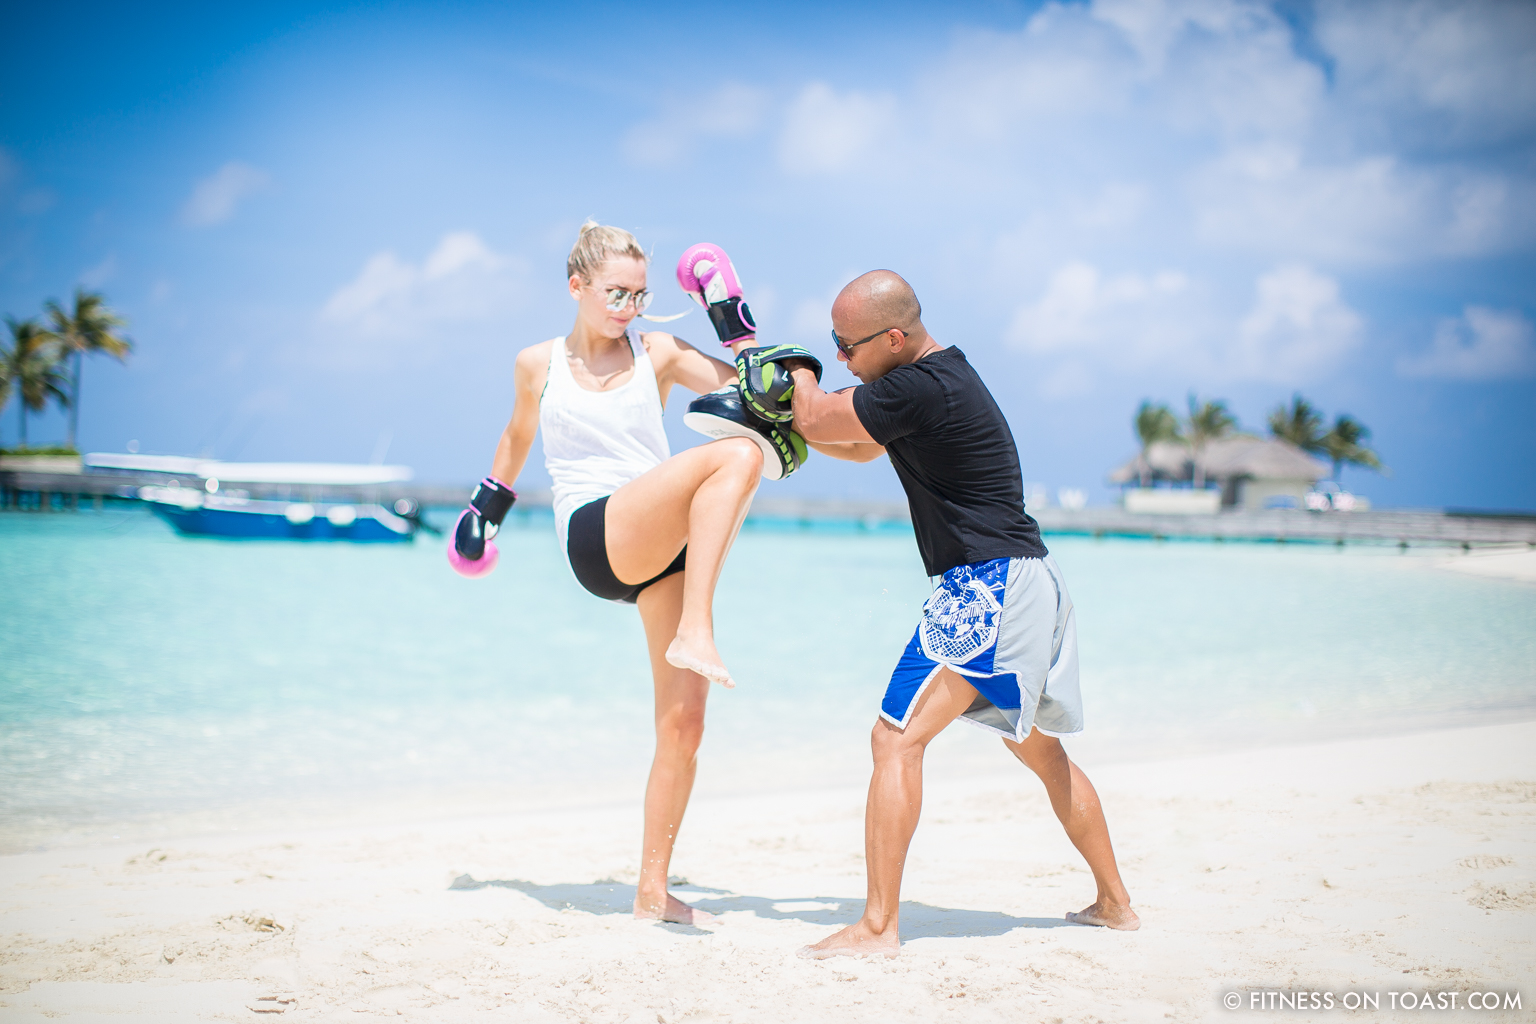 Fitness On Toast Faya Blog Healthy Workout Exercise Apple Watch Maldives Reethi Rah W Resort Spa-42